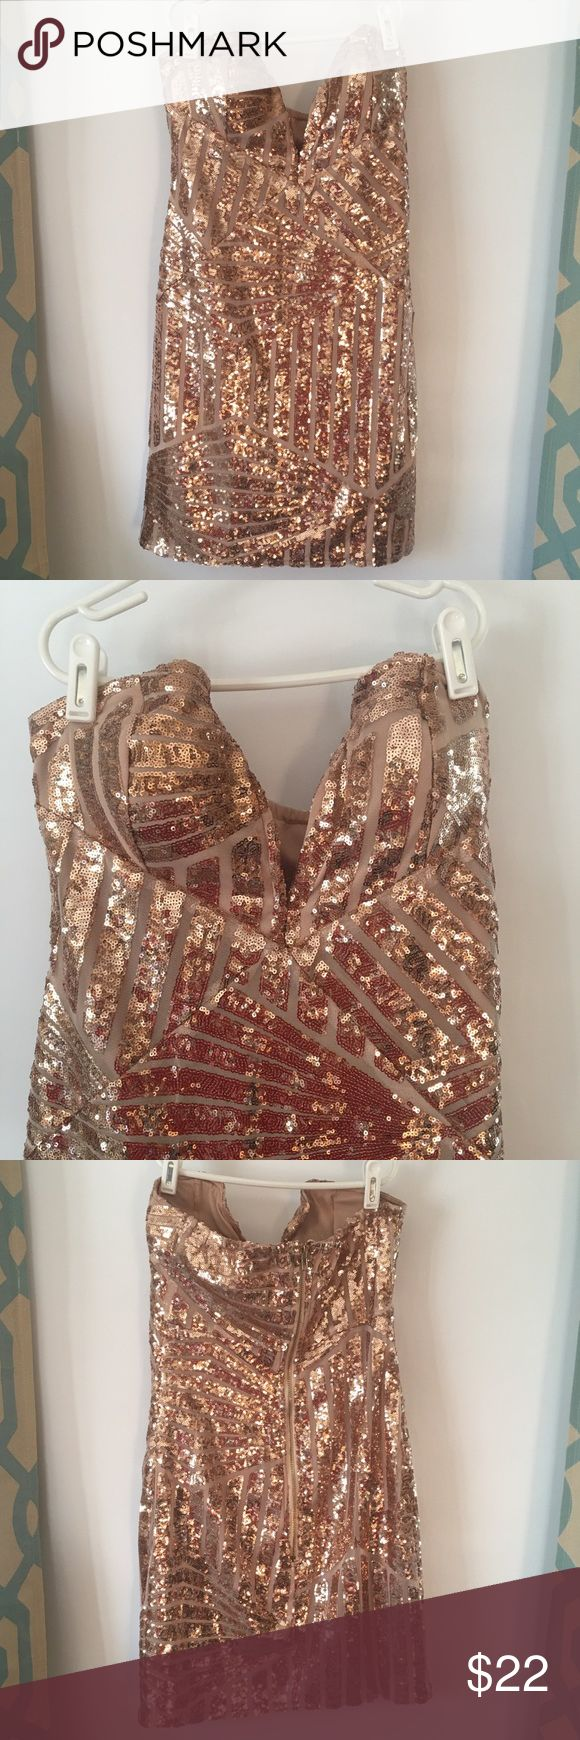 Strapless Rose Gold Sequin Dress Strapless rose gold sequin patterned dress. Wired sweetheart cut with plunging neckline. Zippered closure in back. Size medium. Worn once for New Years. No missing sequins. Dresses Mini